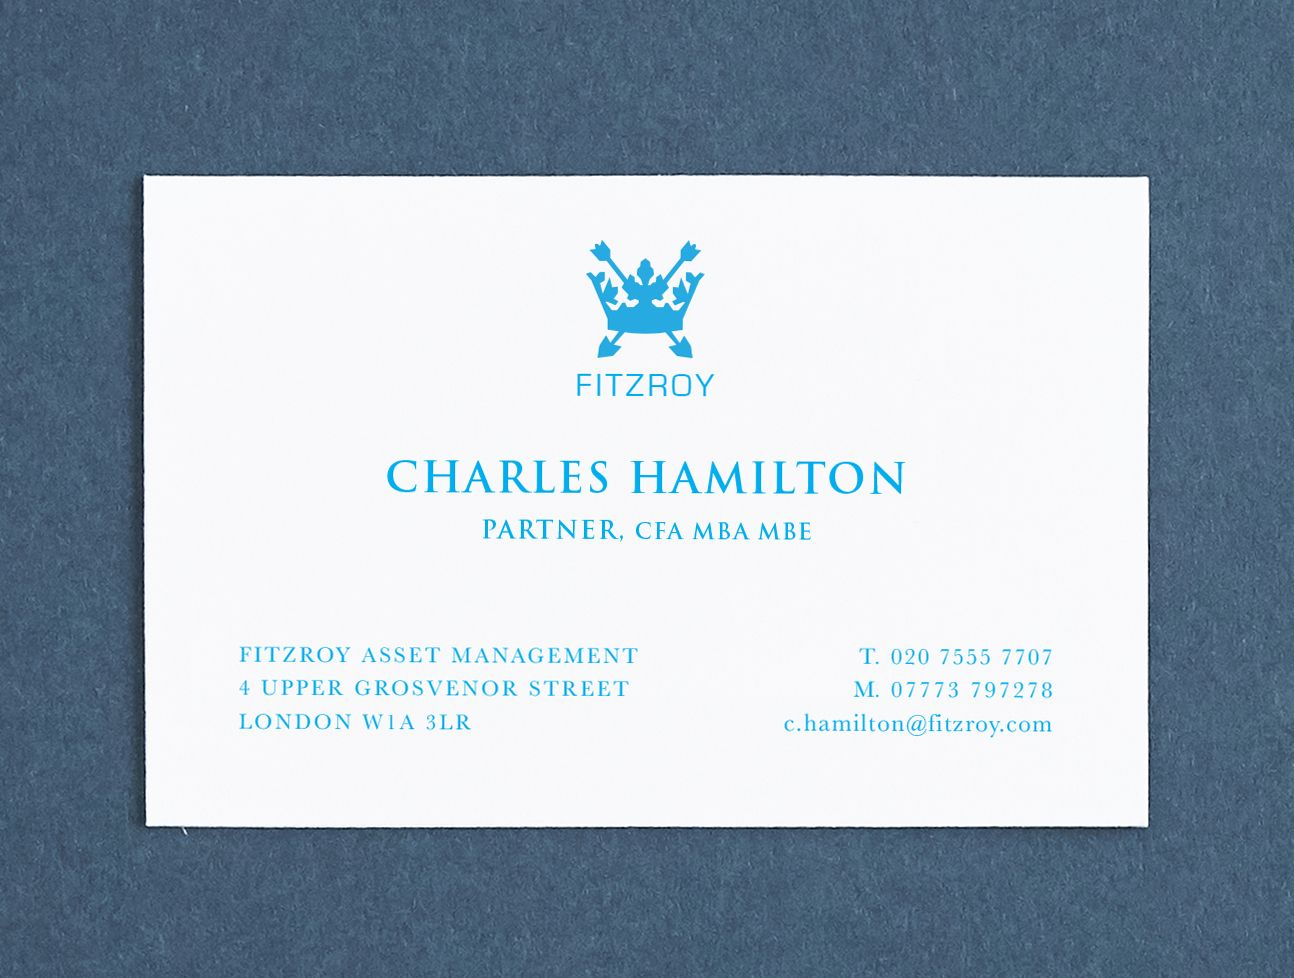 Printed Name Cards Custom Made Business Personalised Professional Calling Stationery Sky